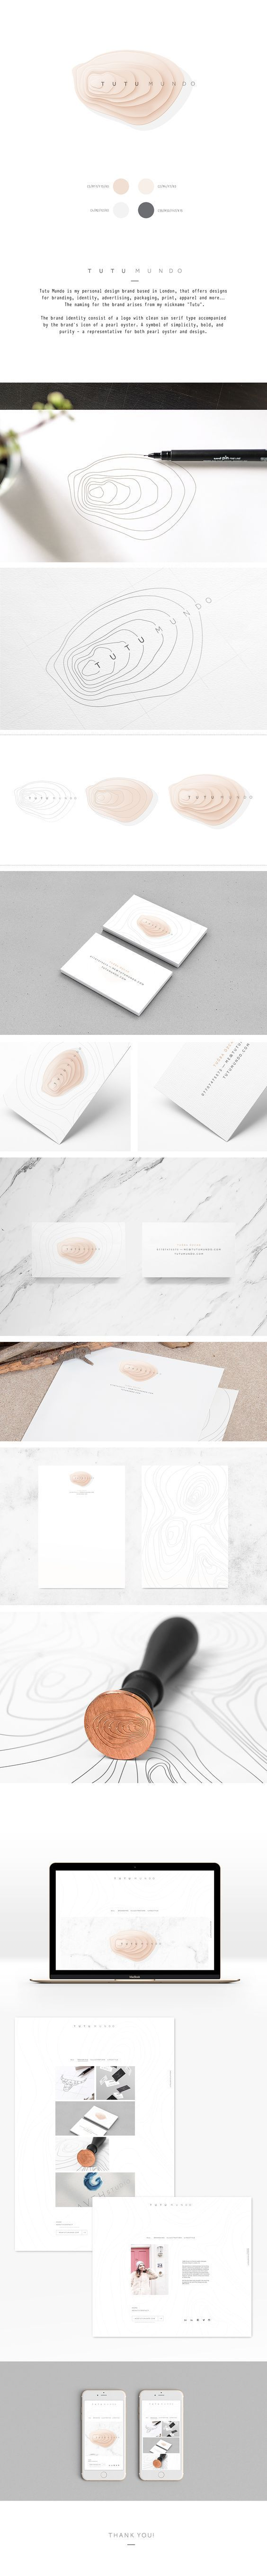 Tutu Mundo Branding on Behance | Fivestar Branding – Design and Branding Agency…